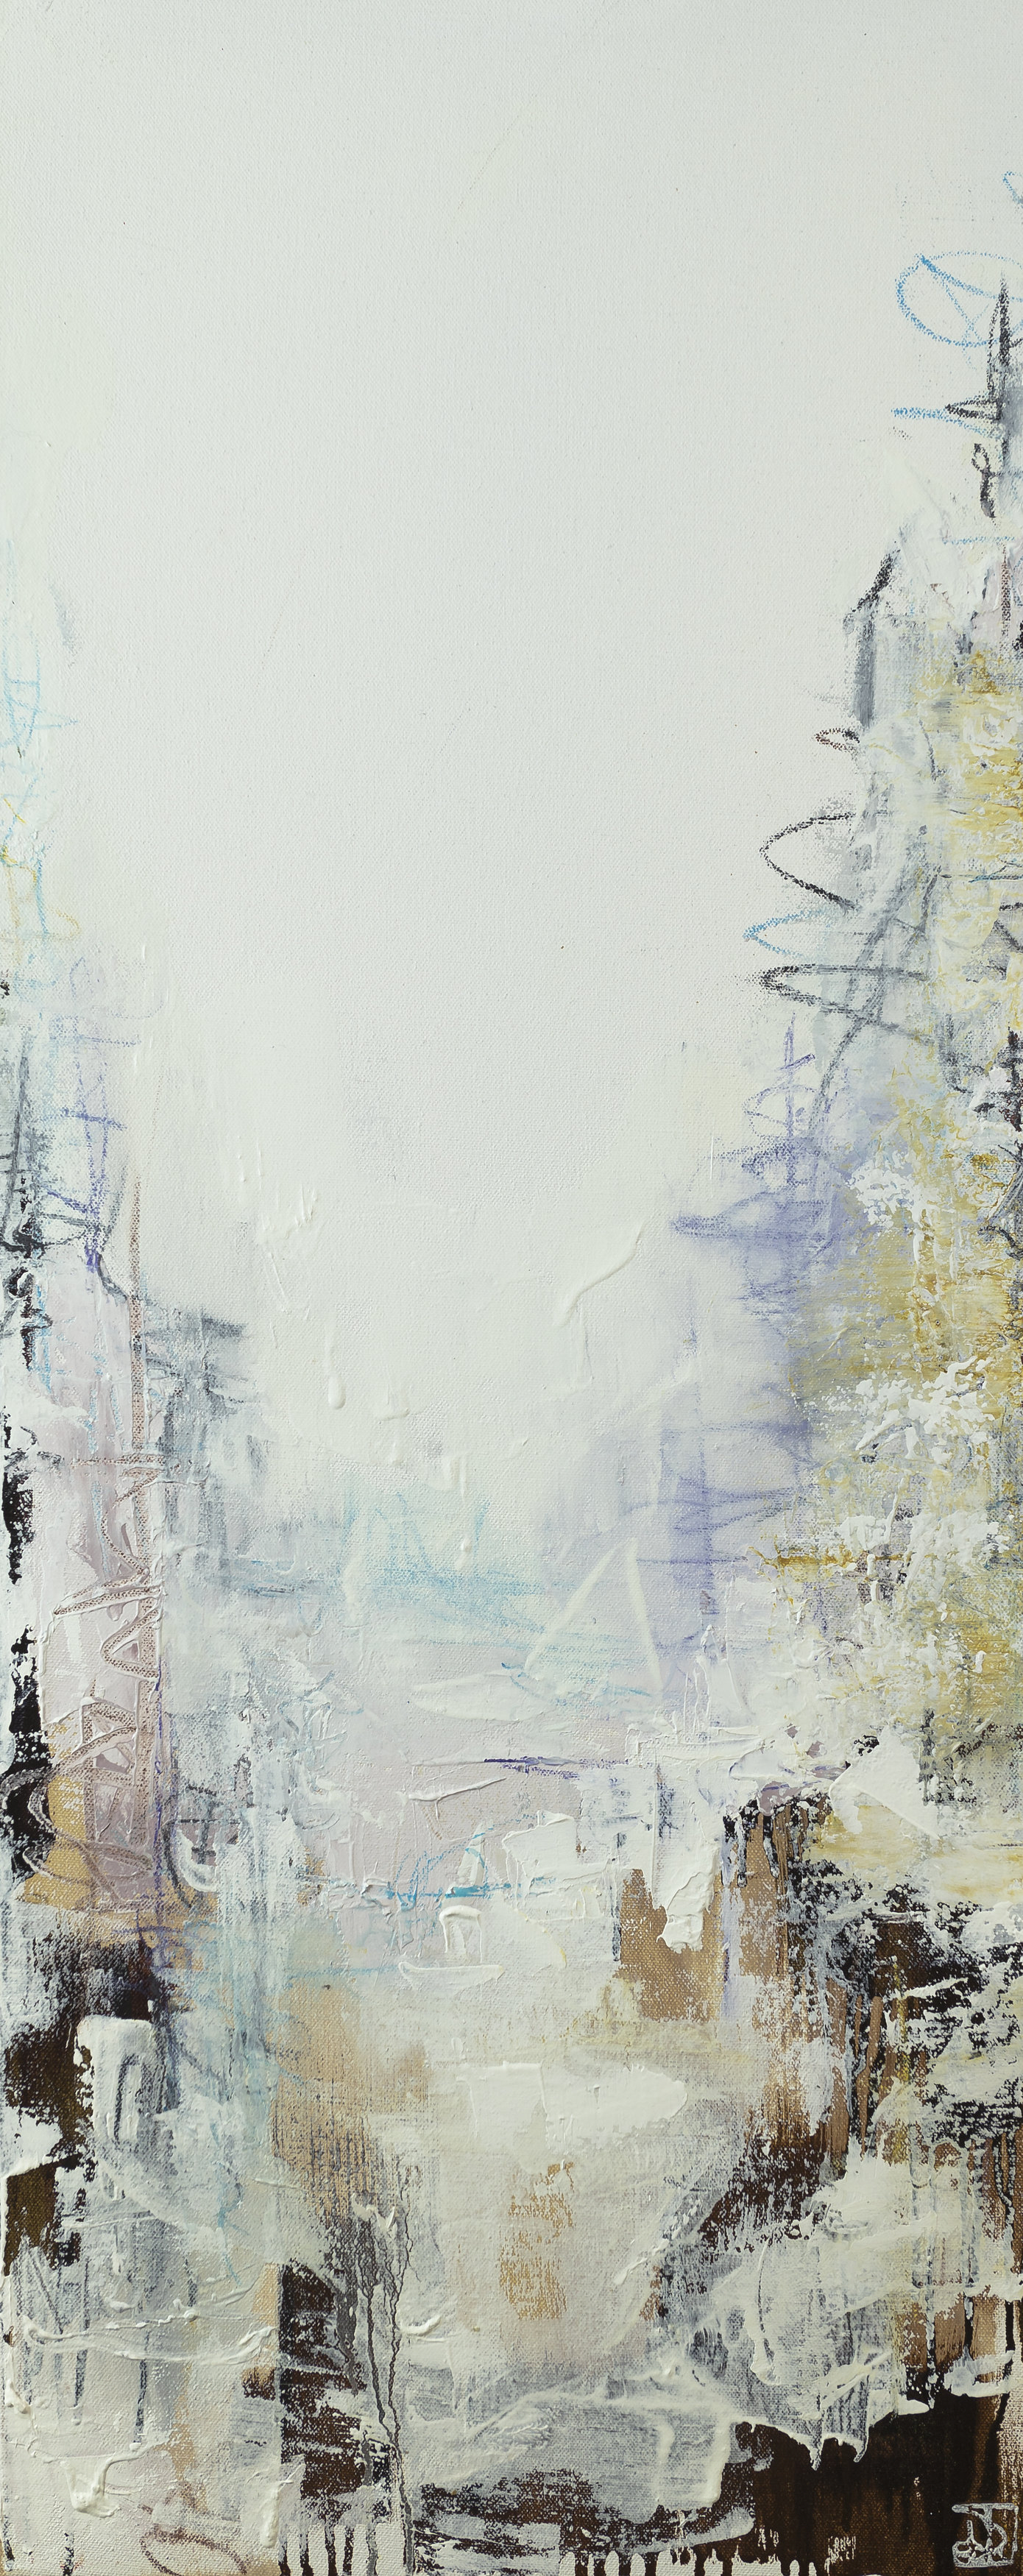 "'Secrets of The Fog' triptych Oil and pastel on canvas 16"" x 40"" (X3)"